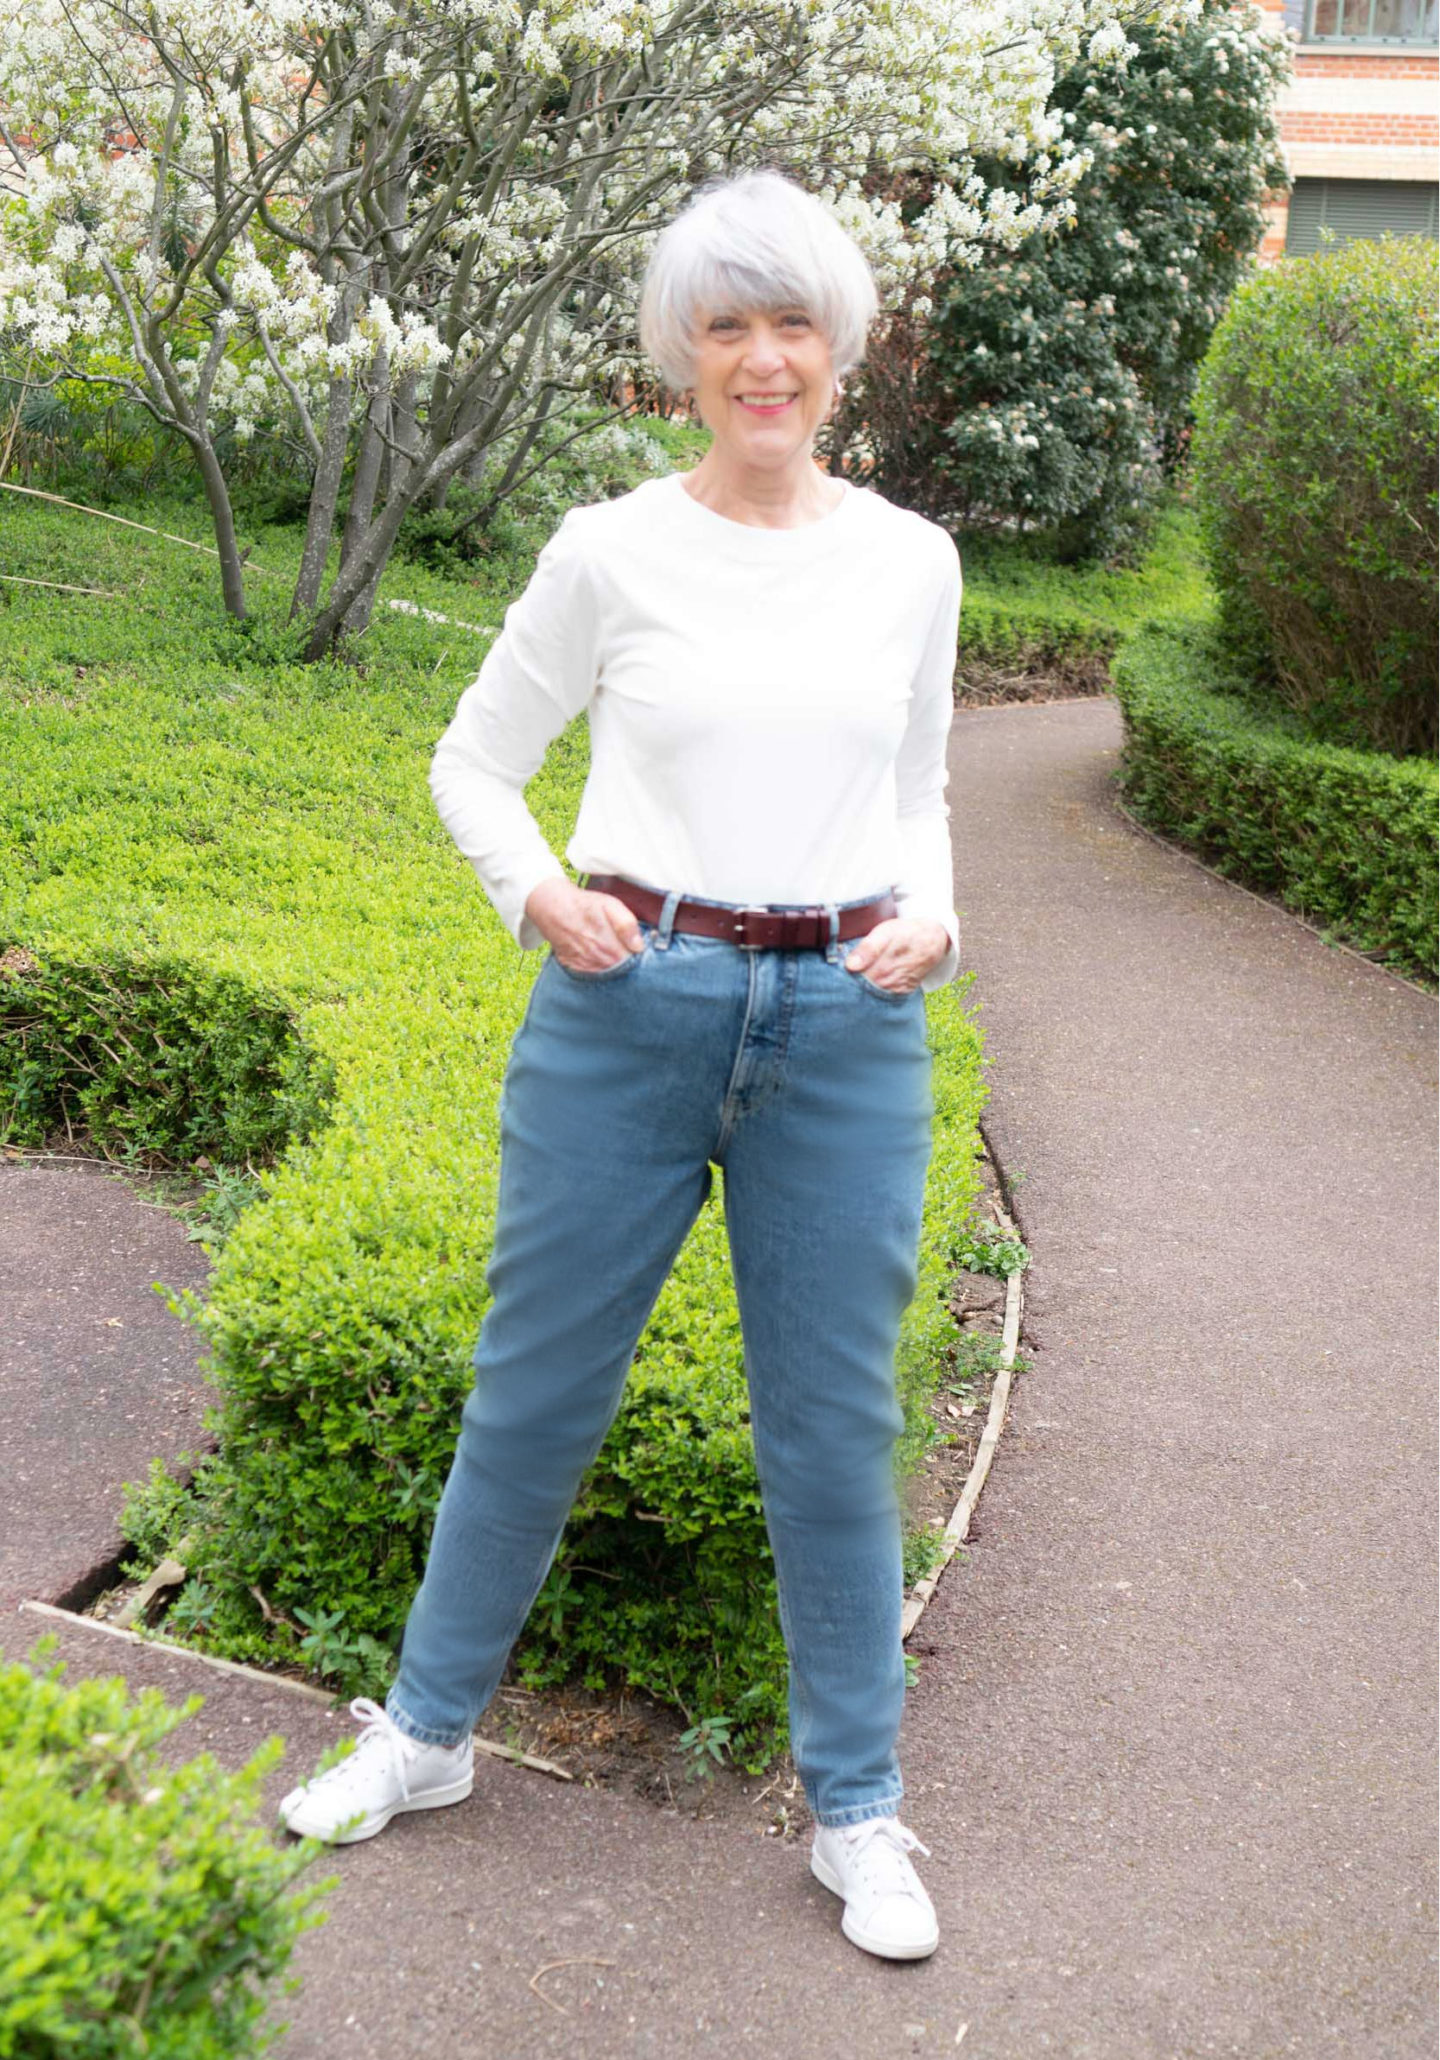 Jeans and tee shirt casual look